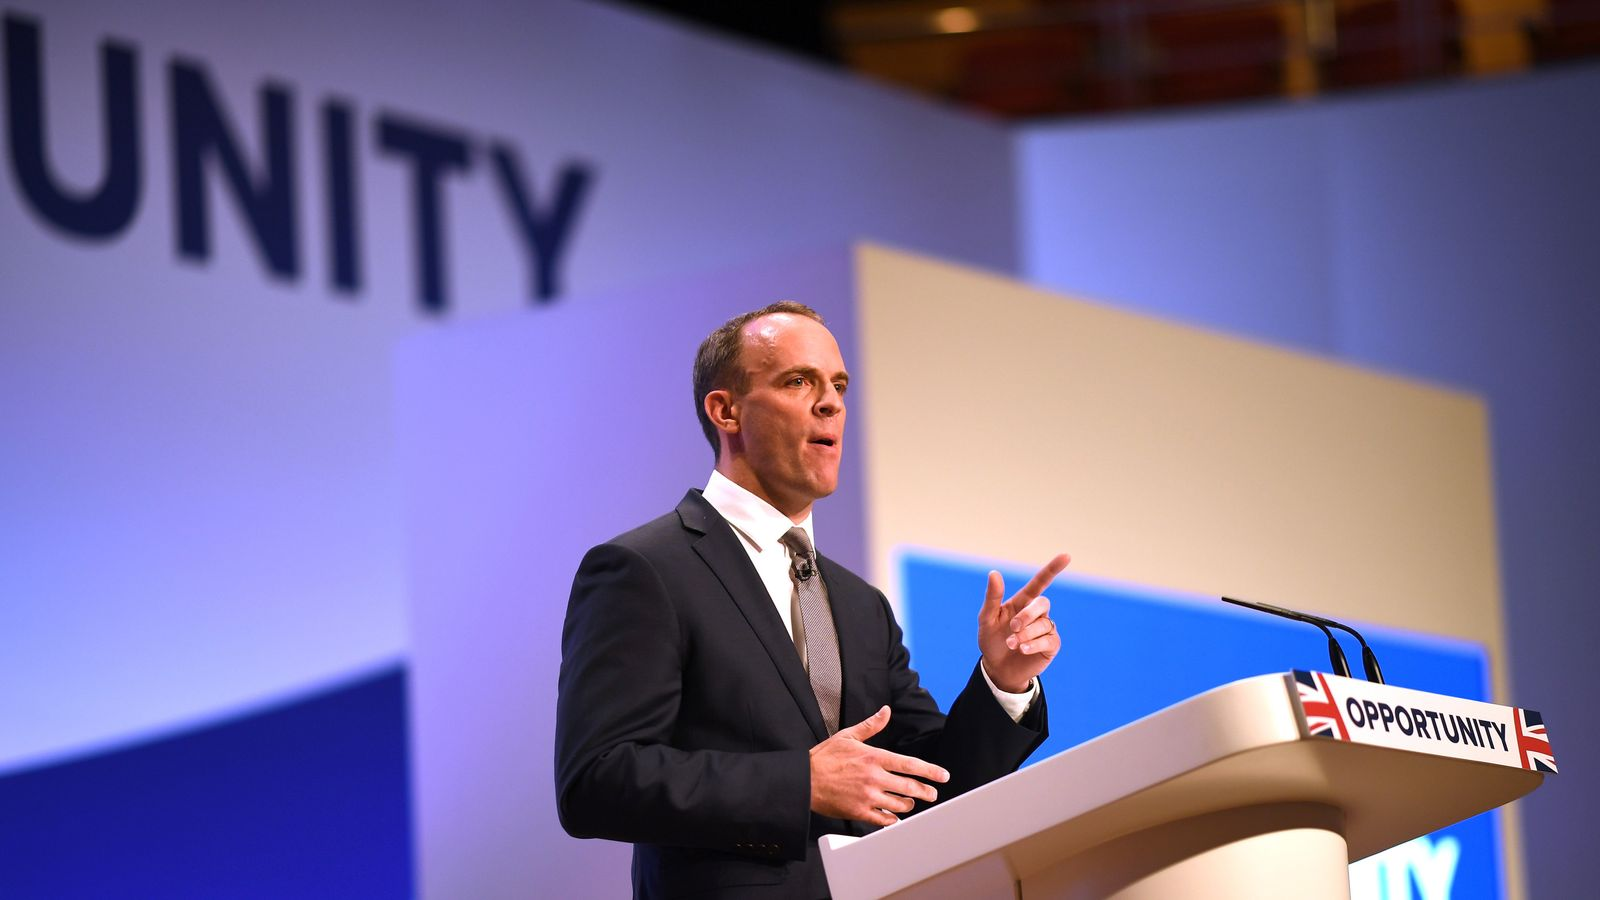 """Dominic Raab promises no 'blindfold Brexit' with hopes of deal by end of November                                                                              The Brexit secretary faces down pressure from Remainer Tories and the DUP, as the government is accused of """"groundhog day""""."""